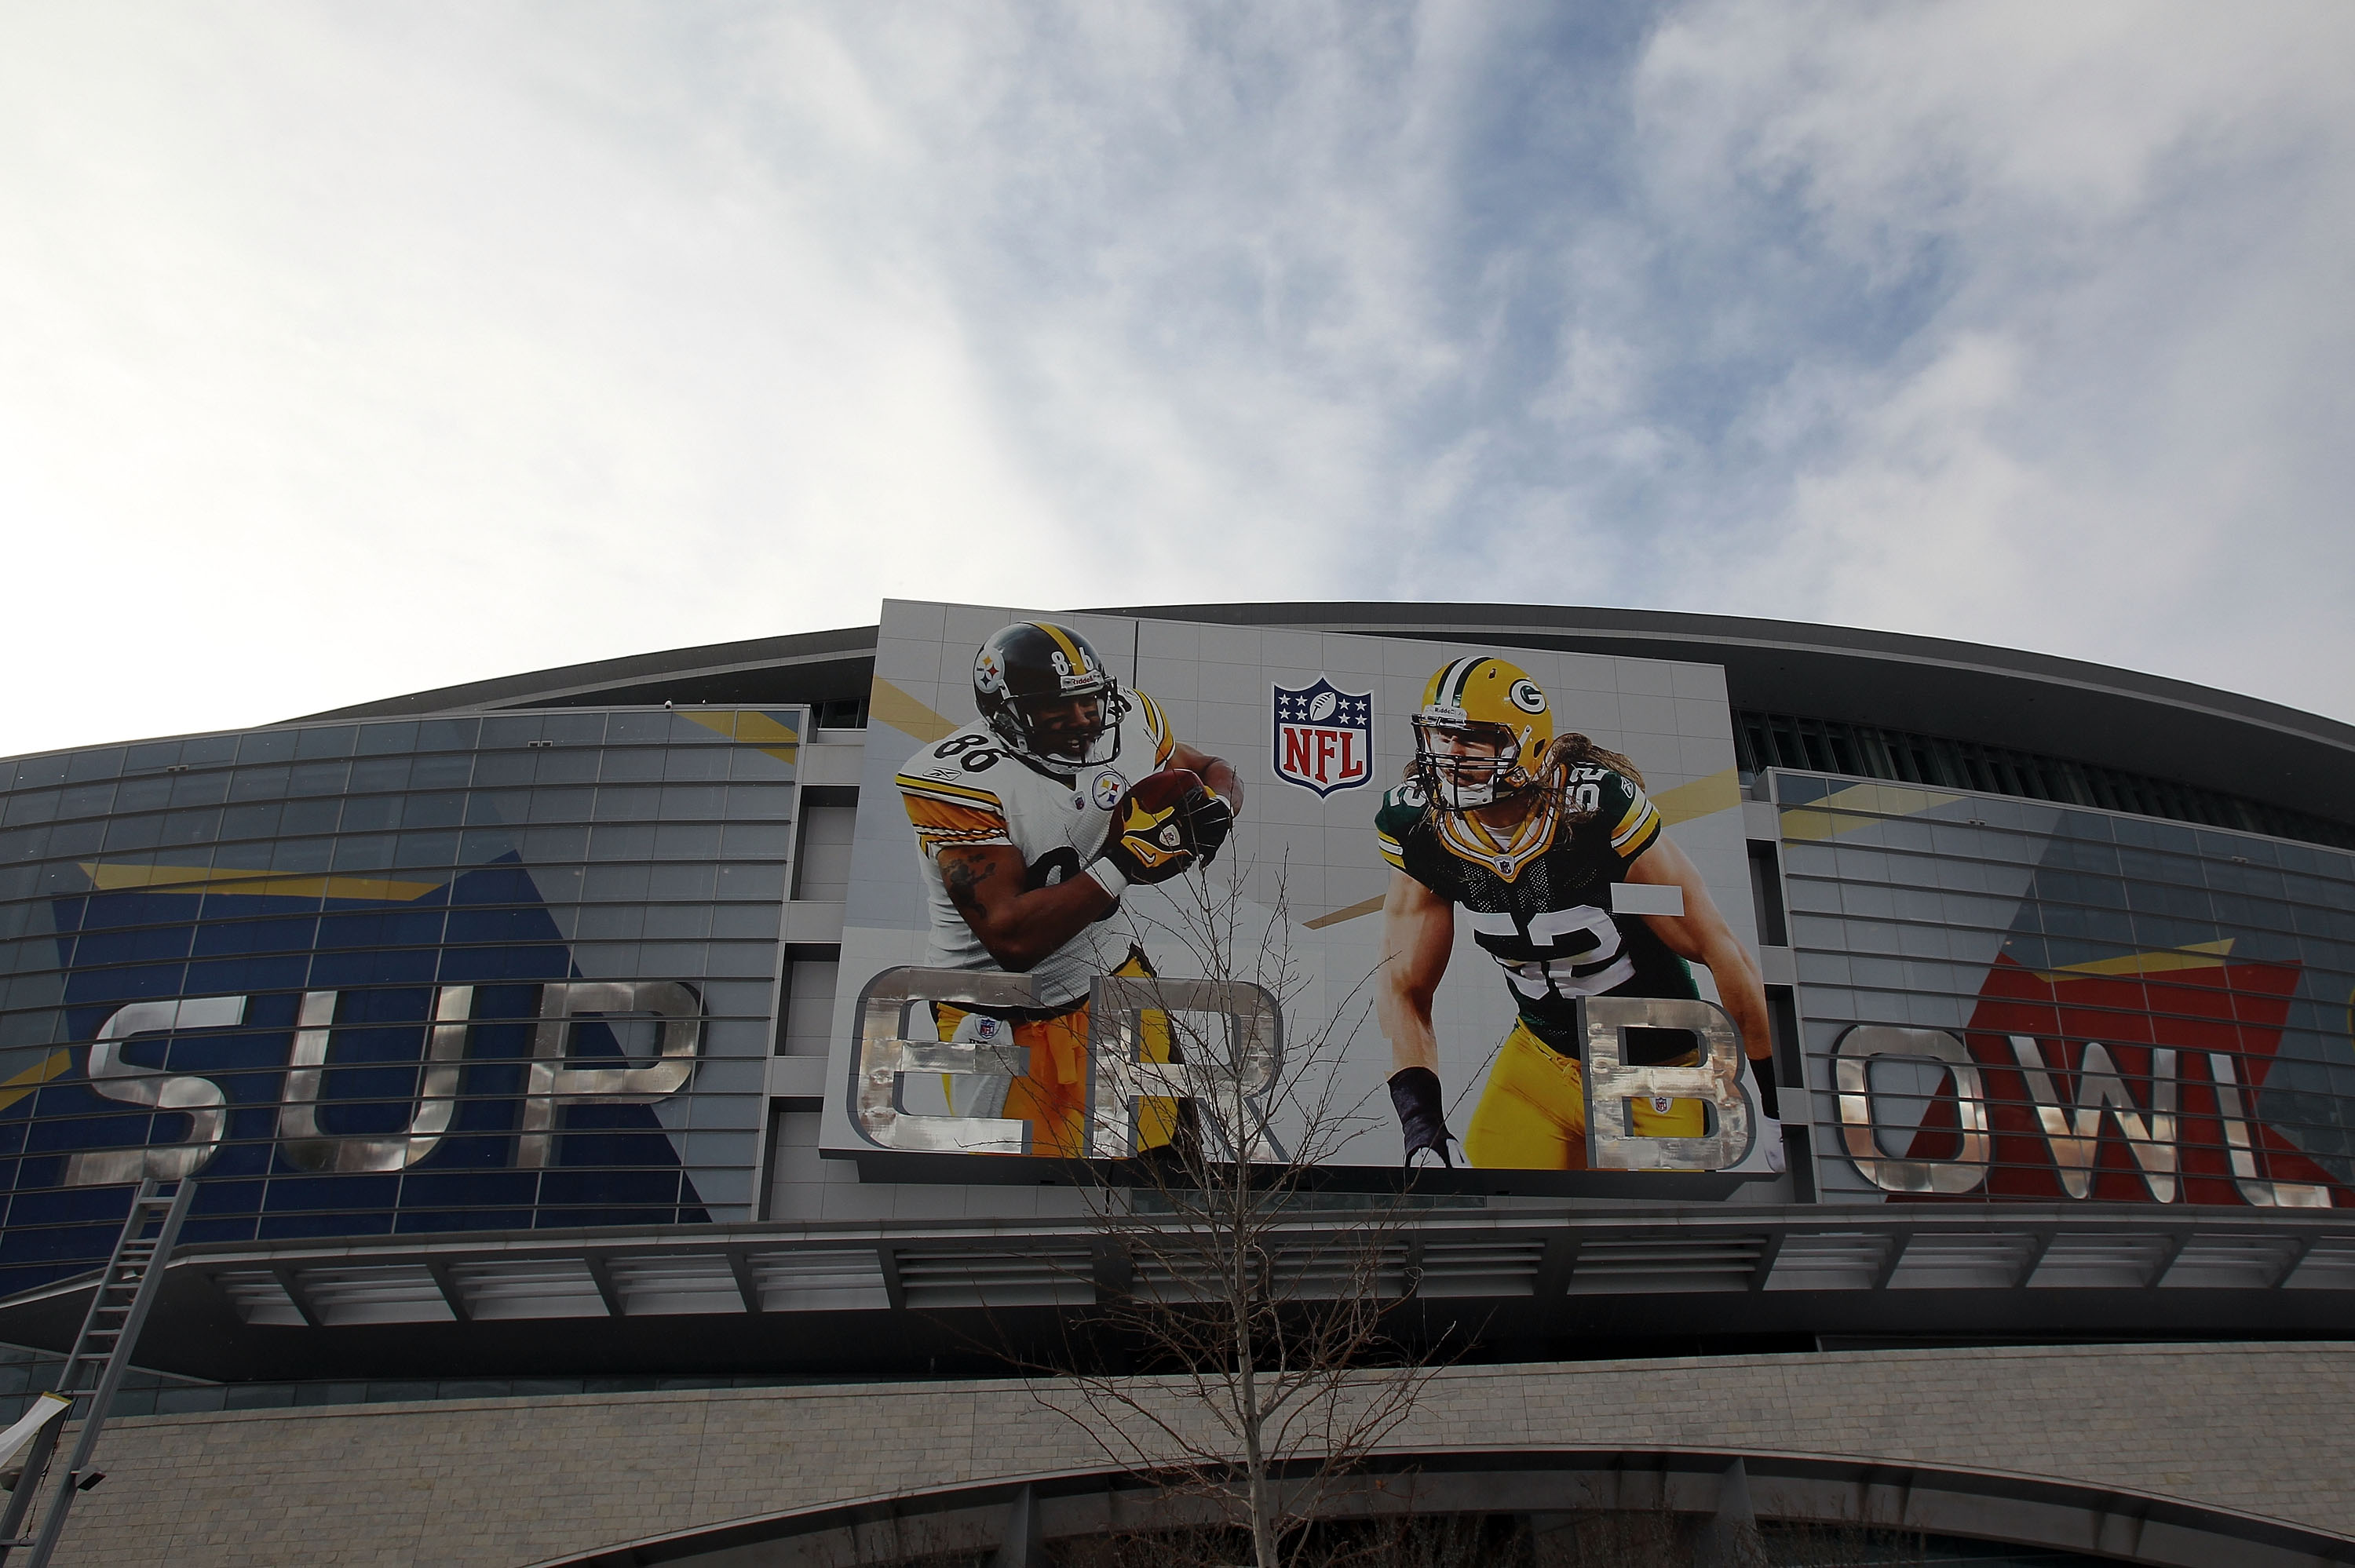 ARLINGTON, TX - FEBRUARY 01:  A view of Cowboys Stadium with outside before Super Bowl XLV Media Day on February 1, 2011 in Arlington, Texas. The Dallas area was hit with winter weather late yesterday evening causing road and school closures in the area.